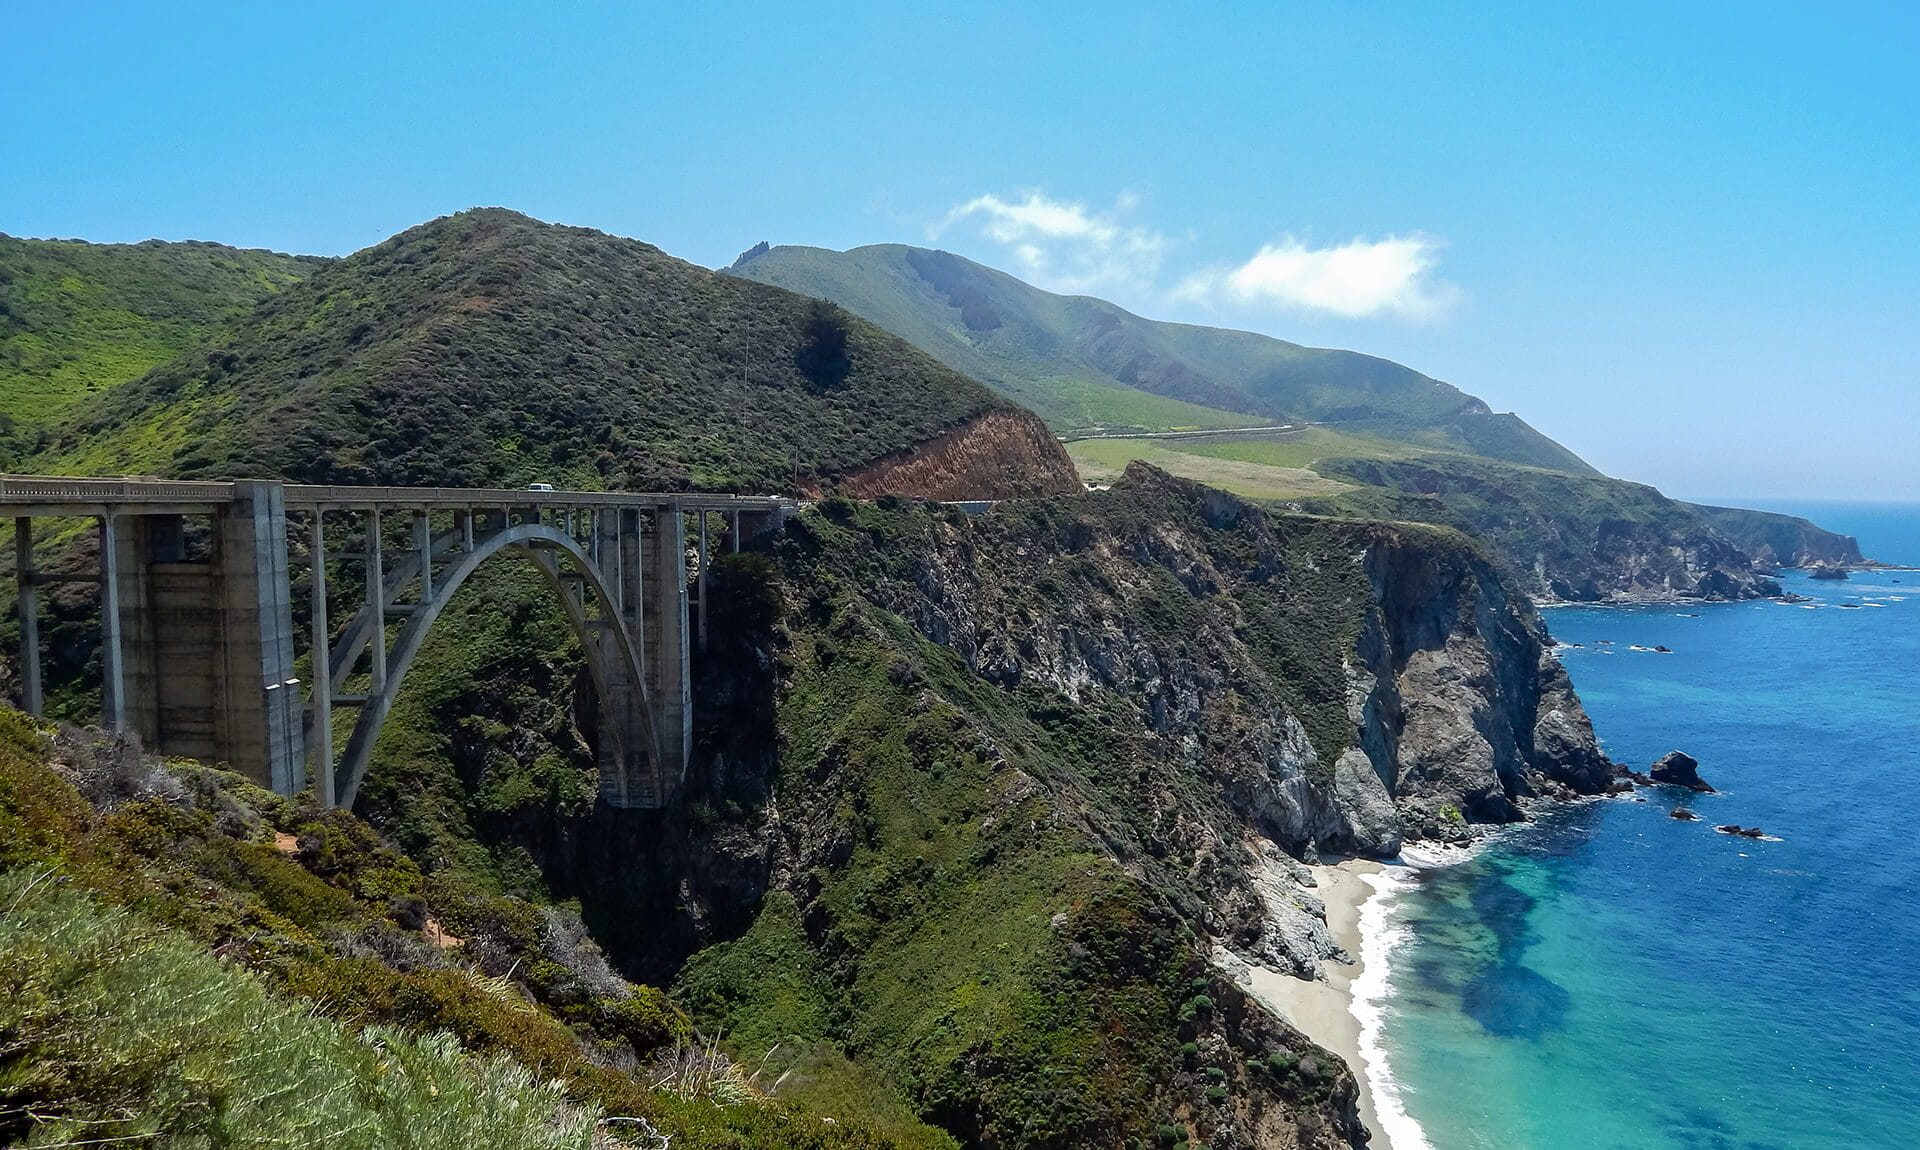 Bixby Creek Bridge, California